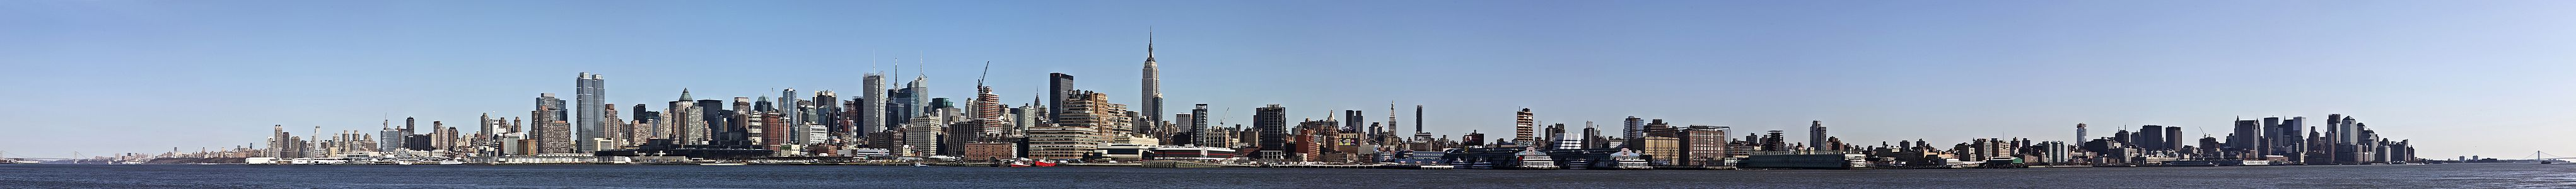 New York City from Hoboken, New Jersey